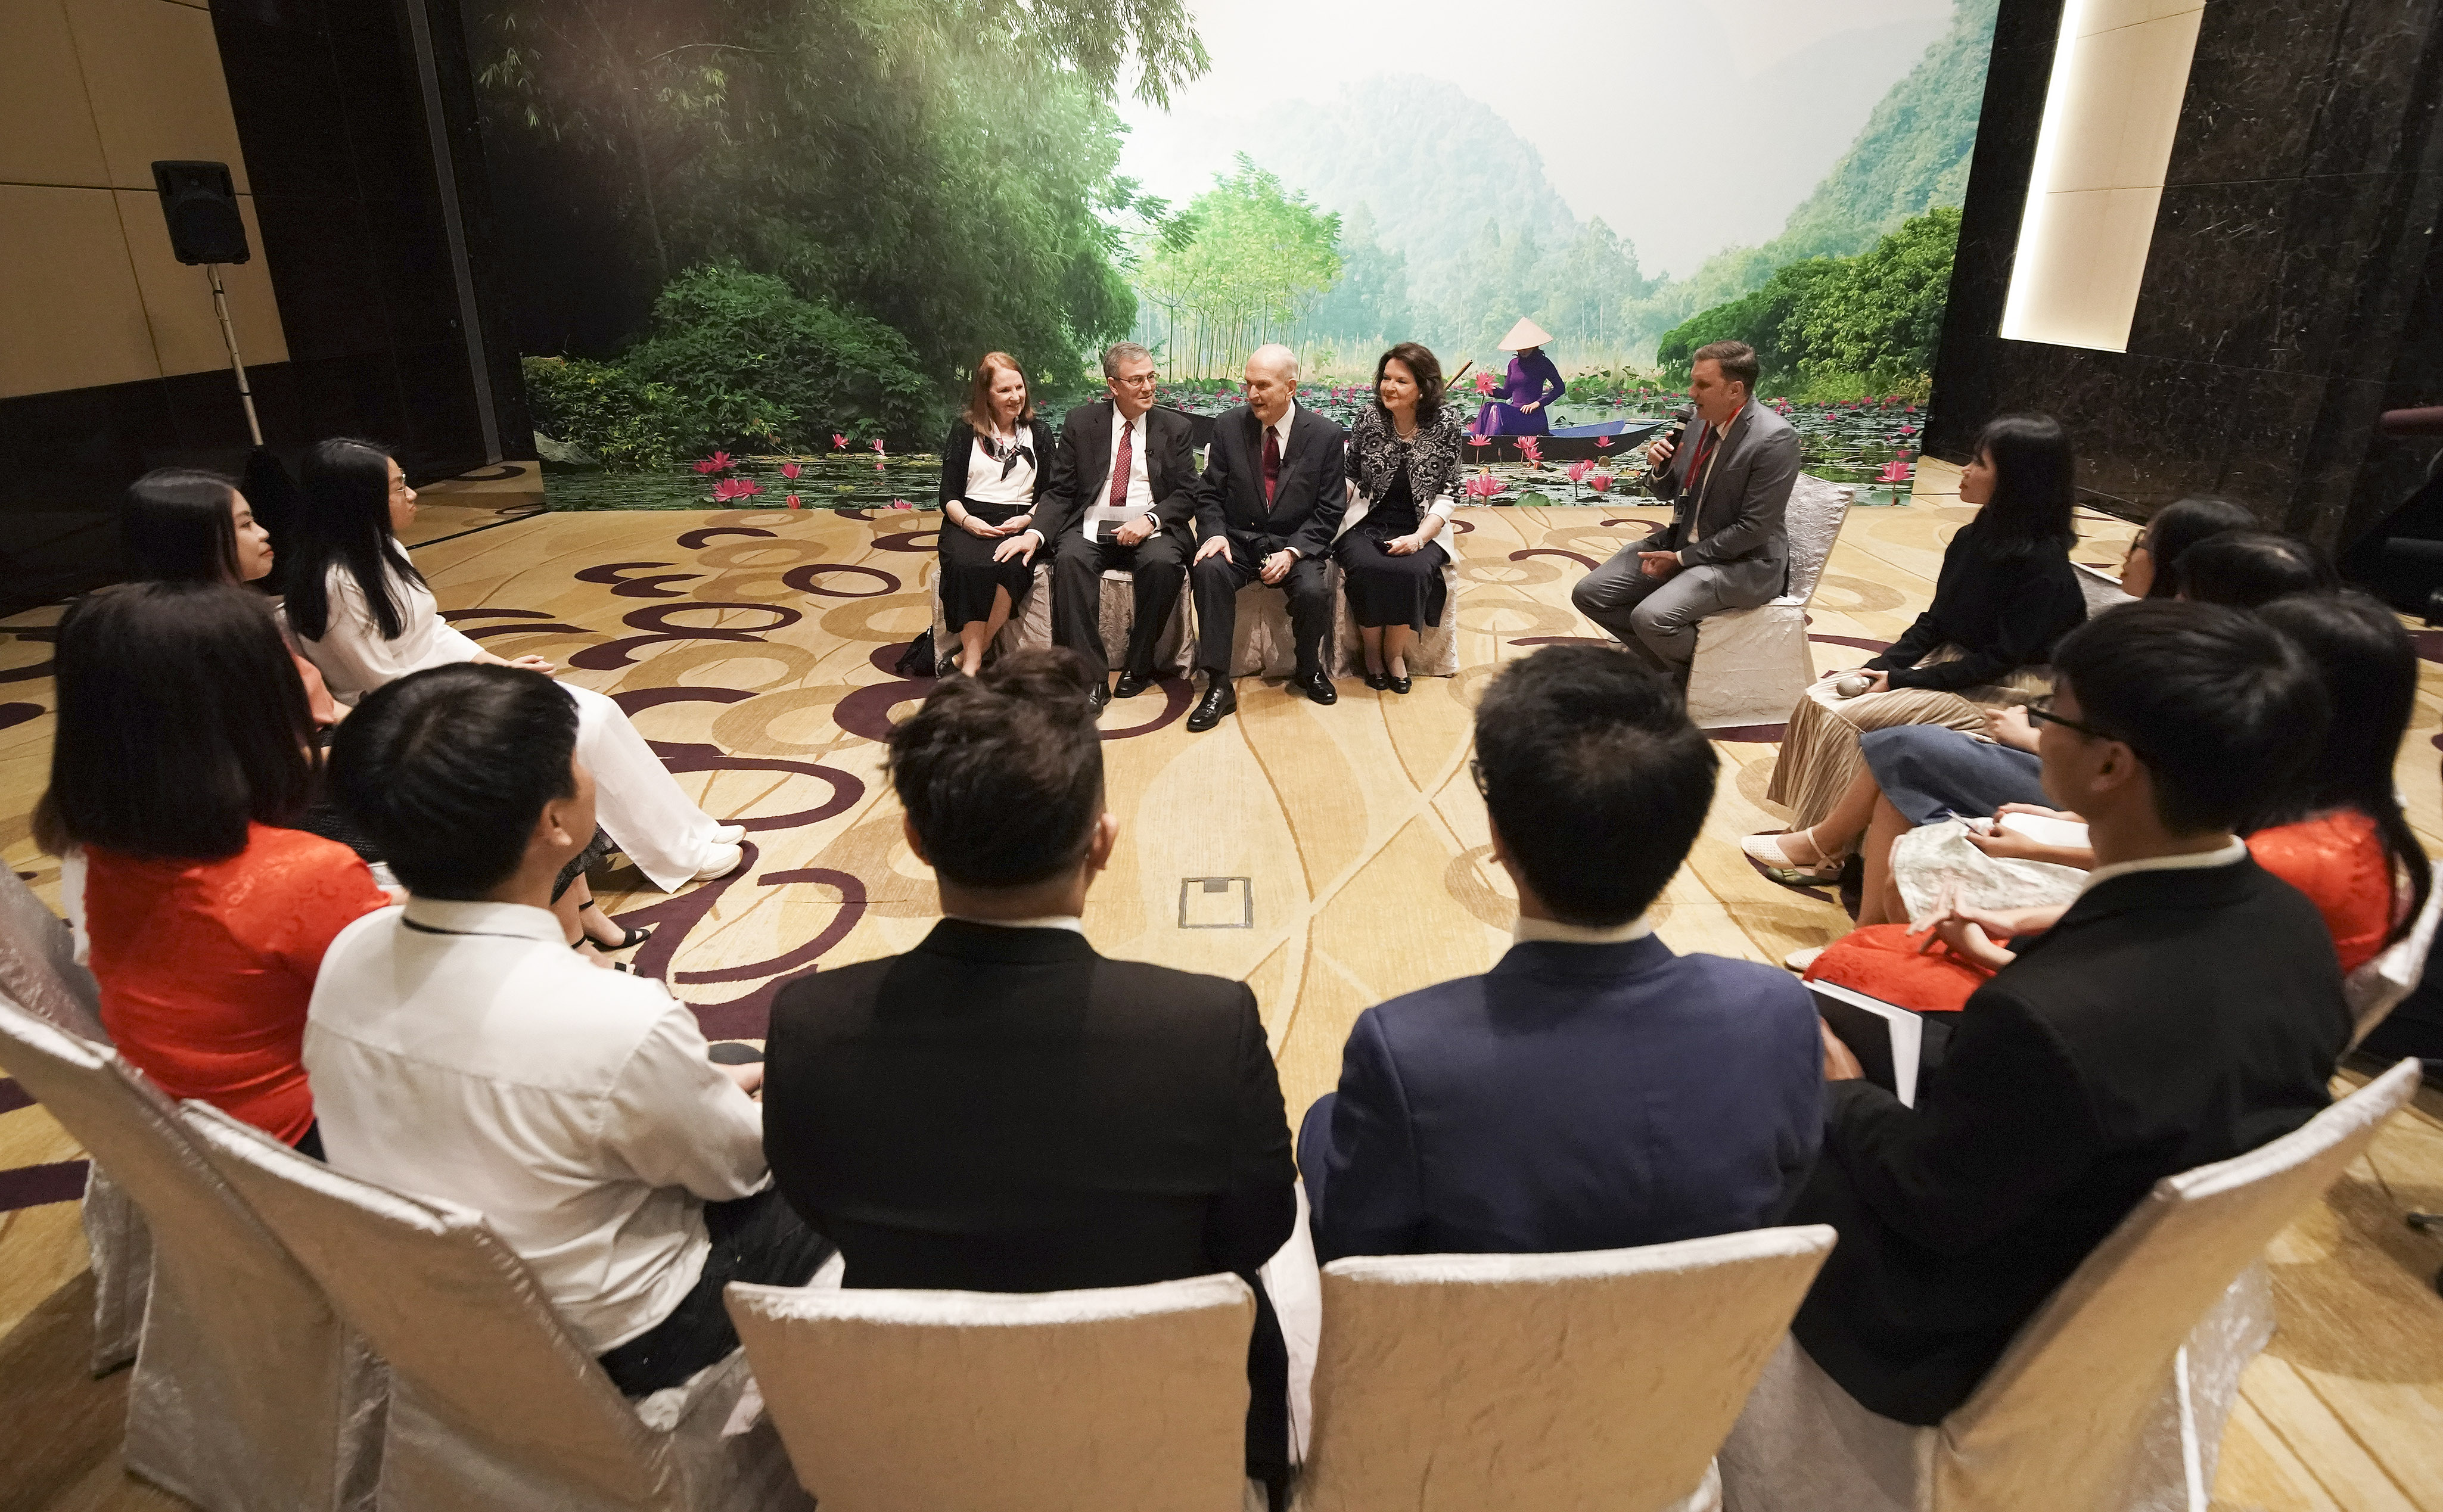 President Russell M. Nelson of The Church of Jesus Christ of Latter-day Saints and his wife, Sister Wendy Nelson, and Elder David F. Evans and his wife, Sister Mary Evans, speak with youth in Hanoi, Vietnam, on Sunday, Nov. 17, 2019.